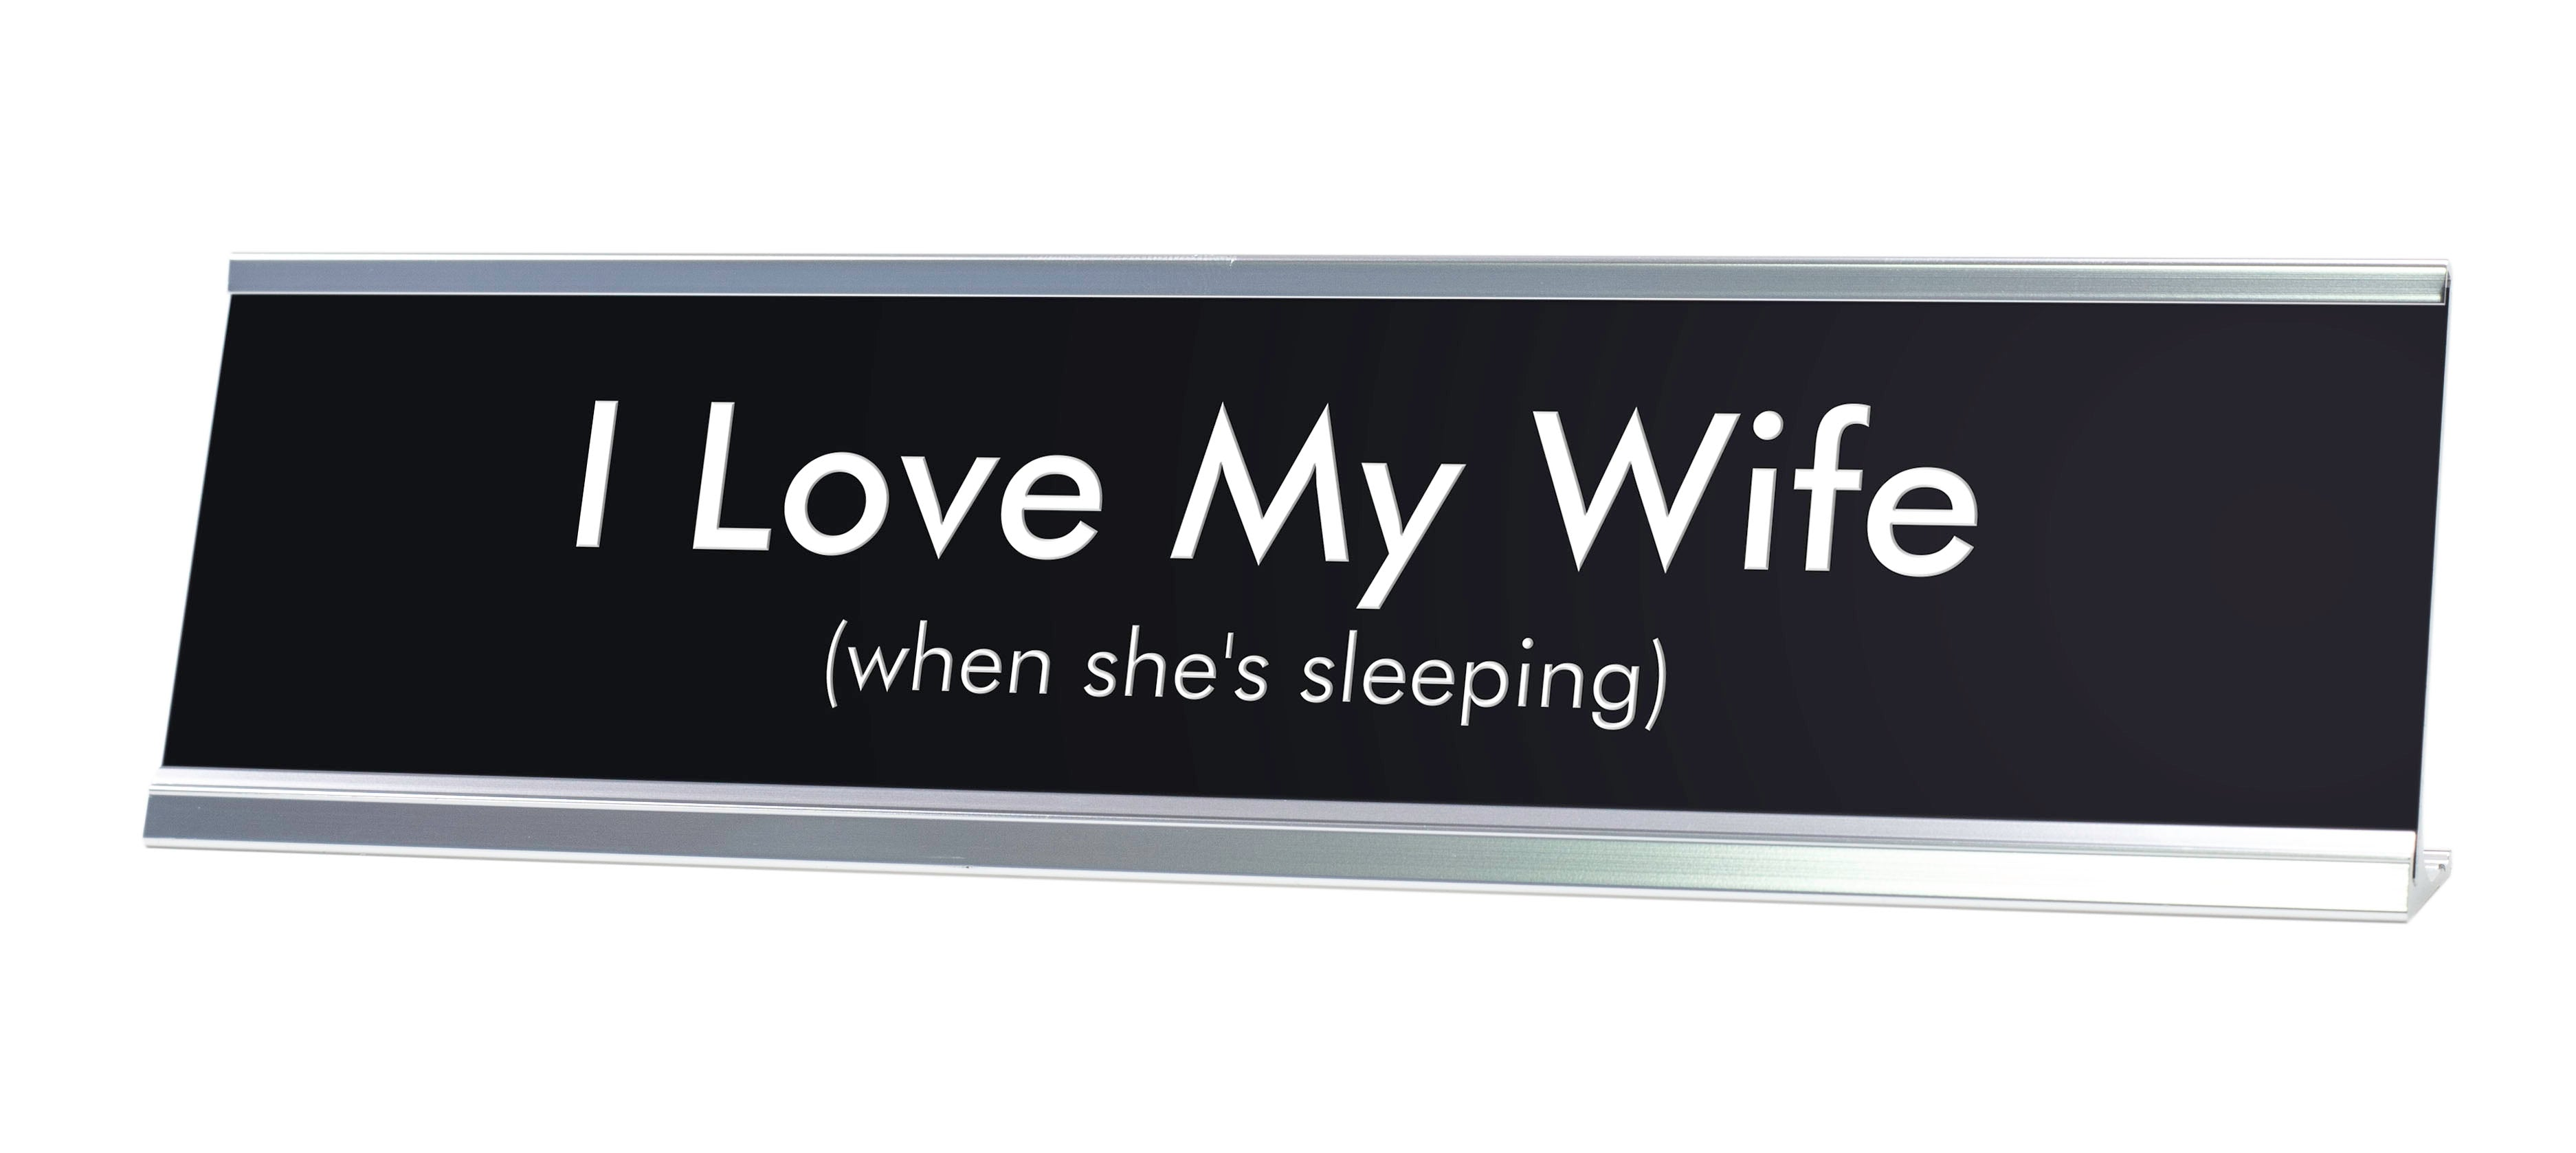 I Love My Wife when she's sleeping Novelty Desk Sign